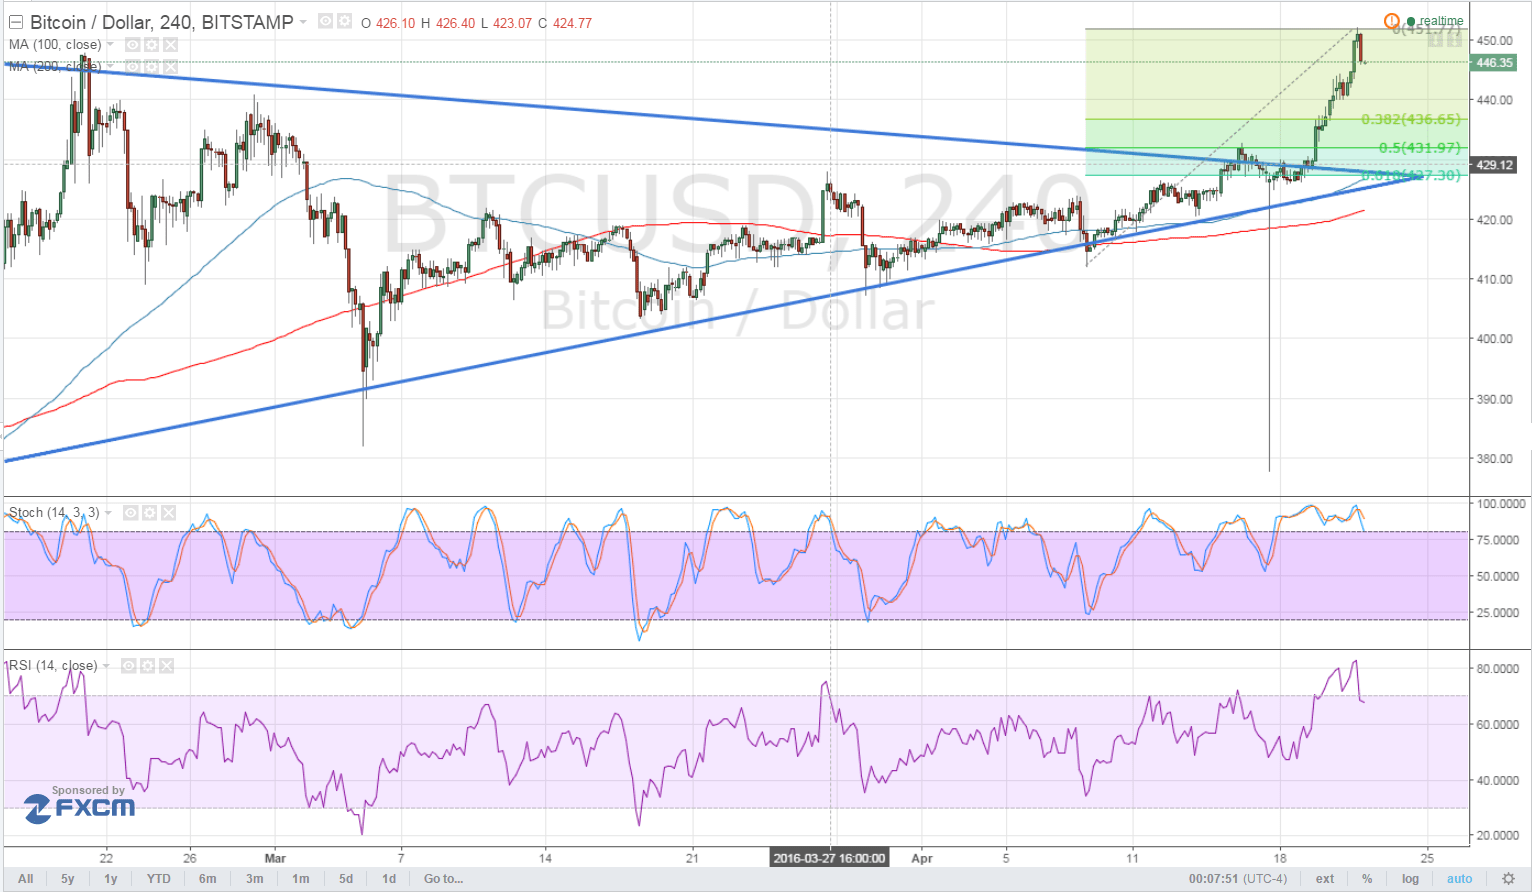 Bitcoin Price Technical Analysis for 04/22/2016 - Upside Breakout Pullback?